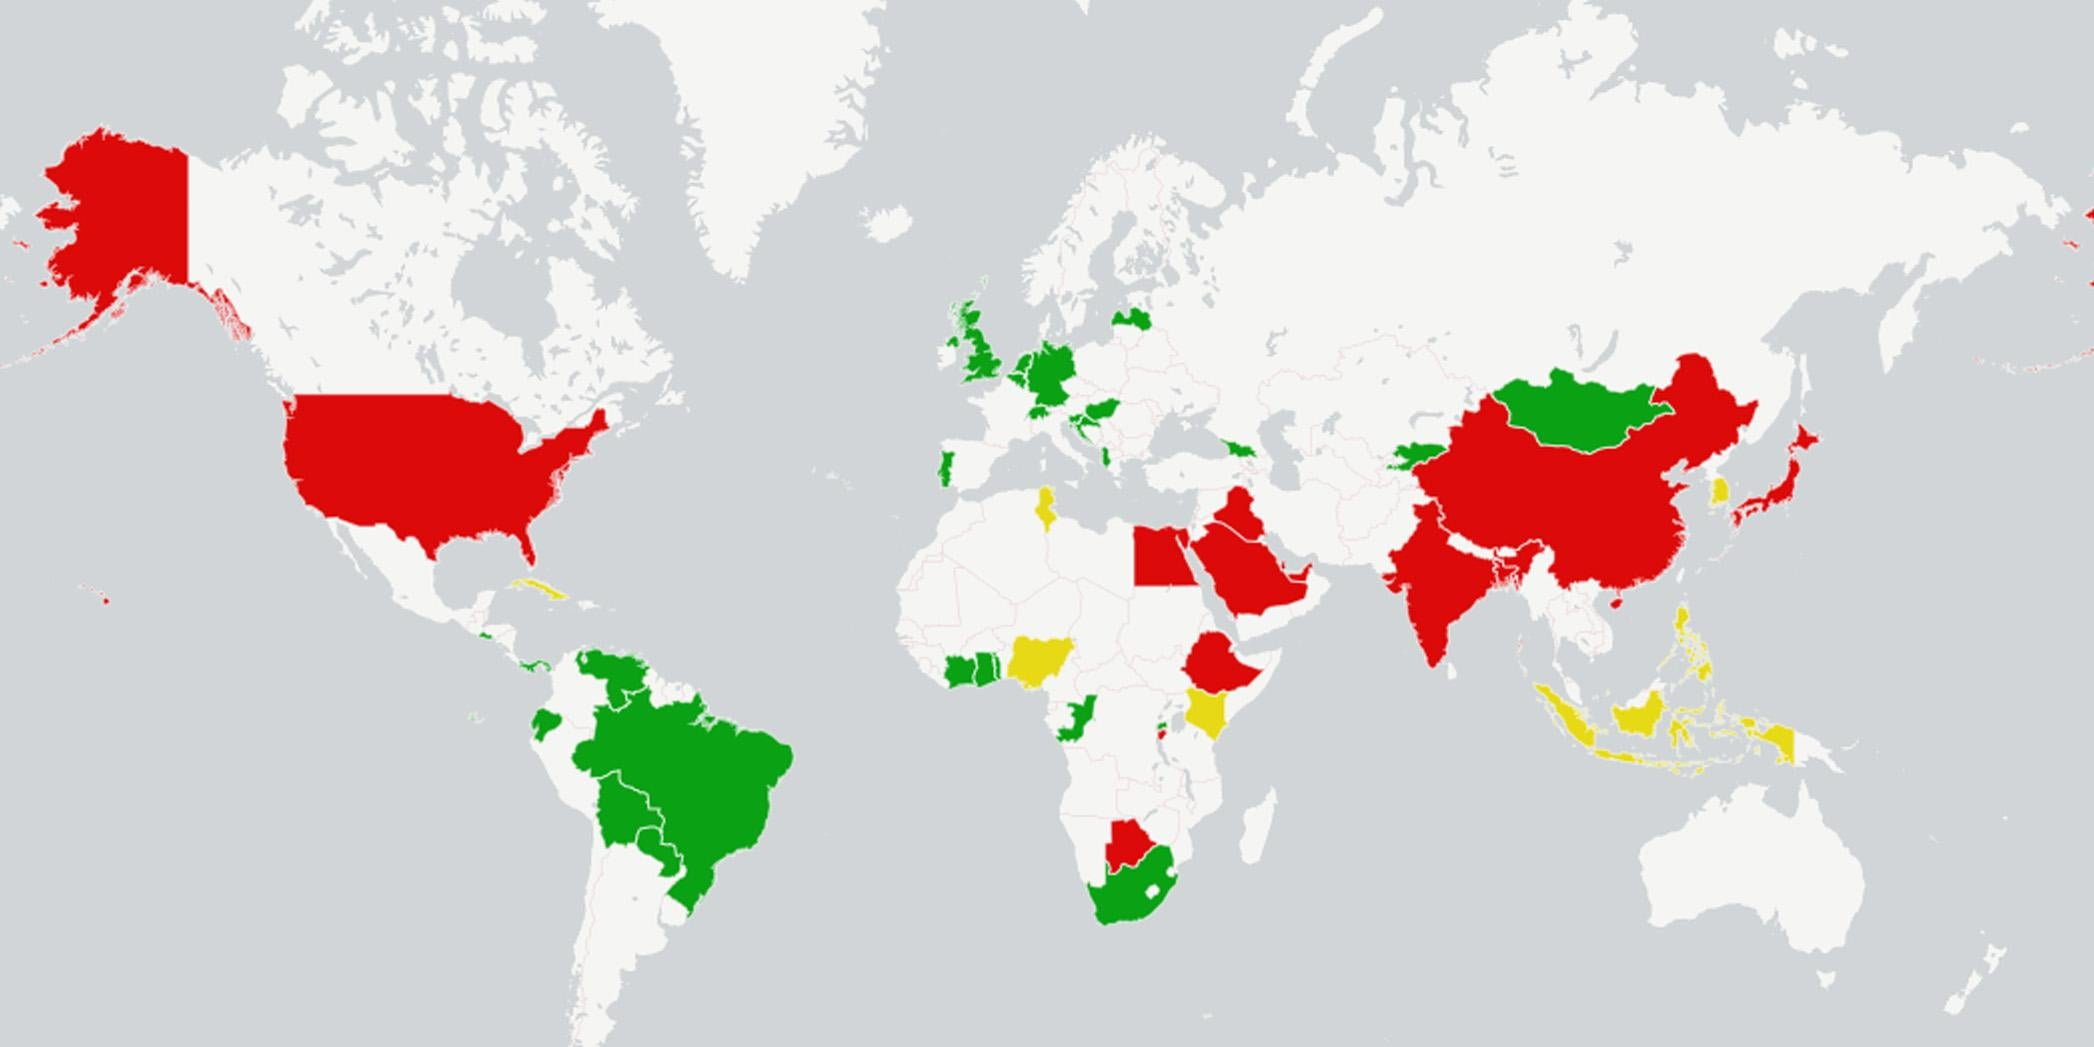 The US just voted not to condemn countries that have the ... Usa States With Penalty on